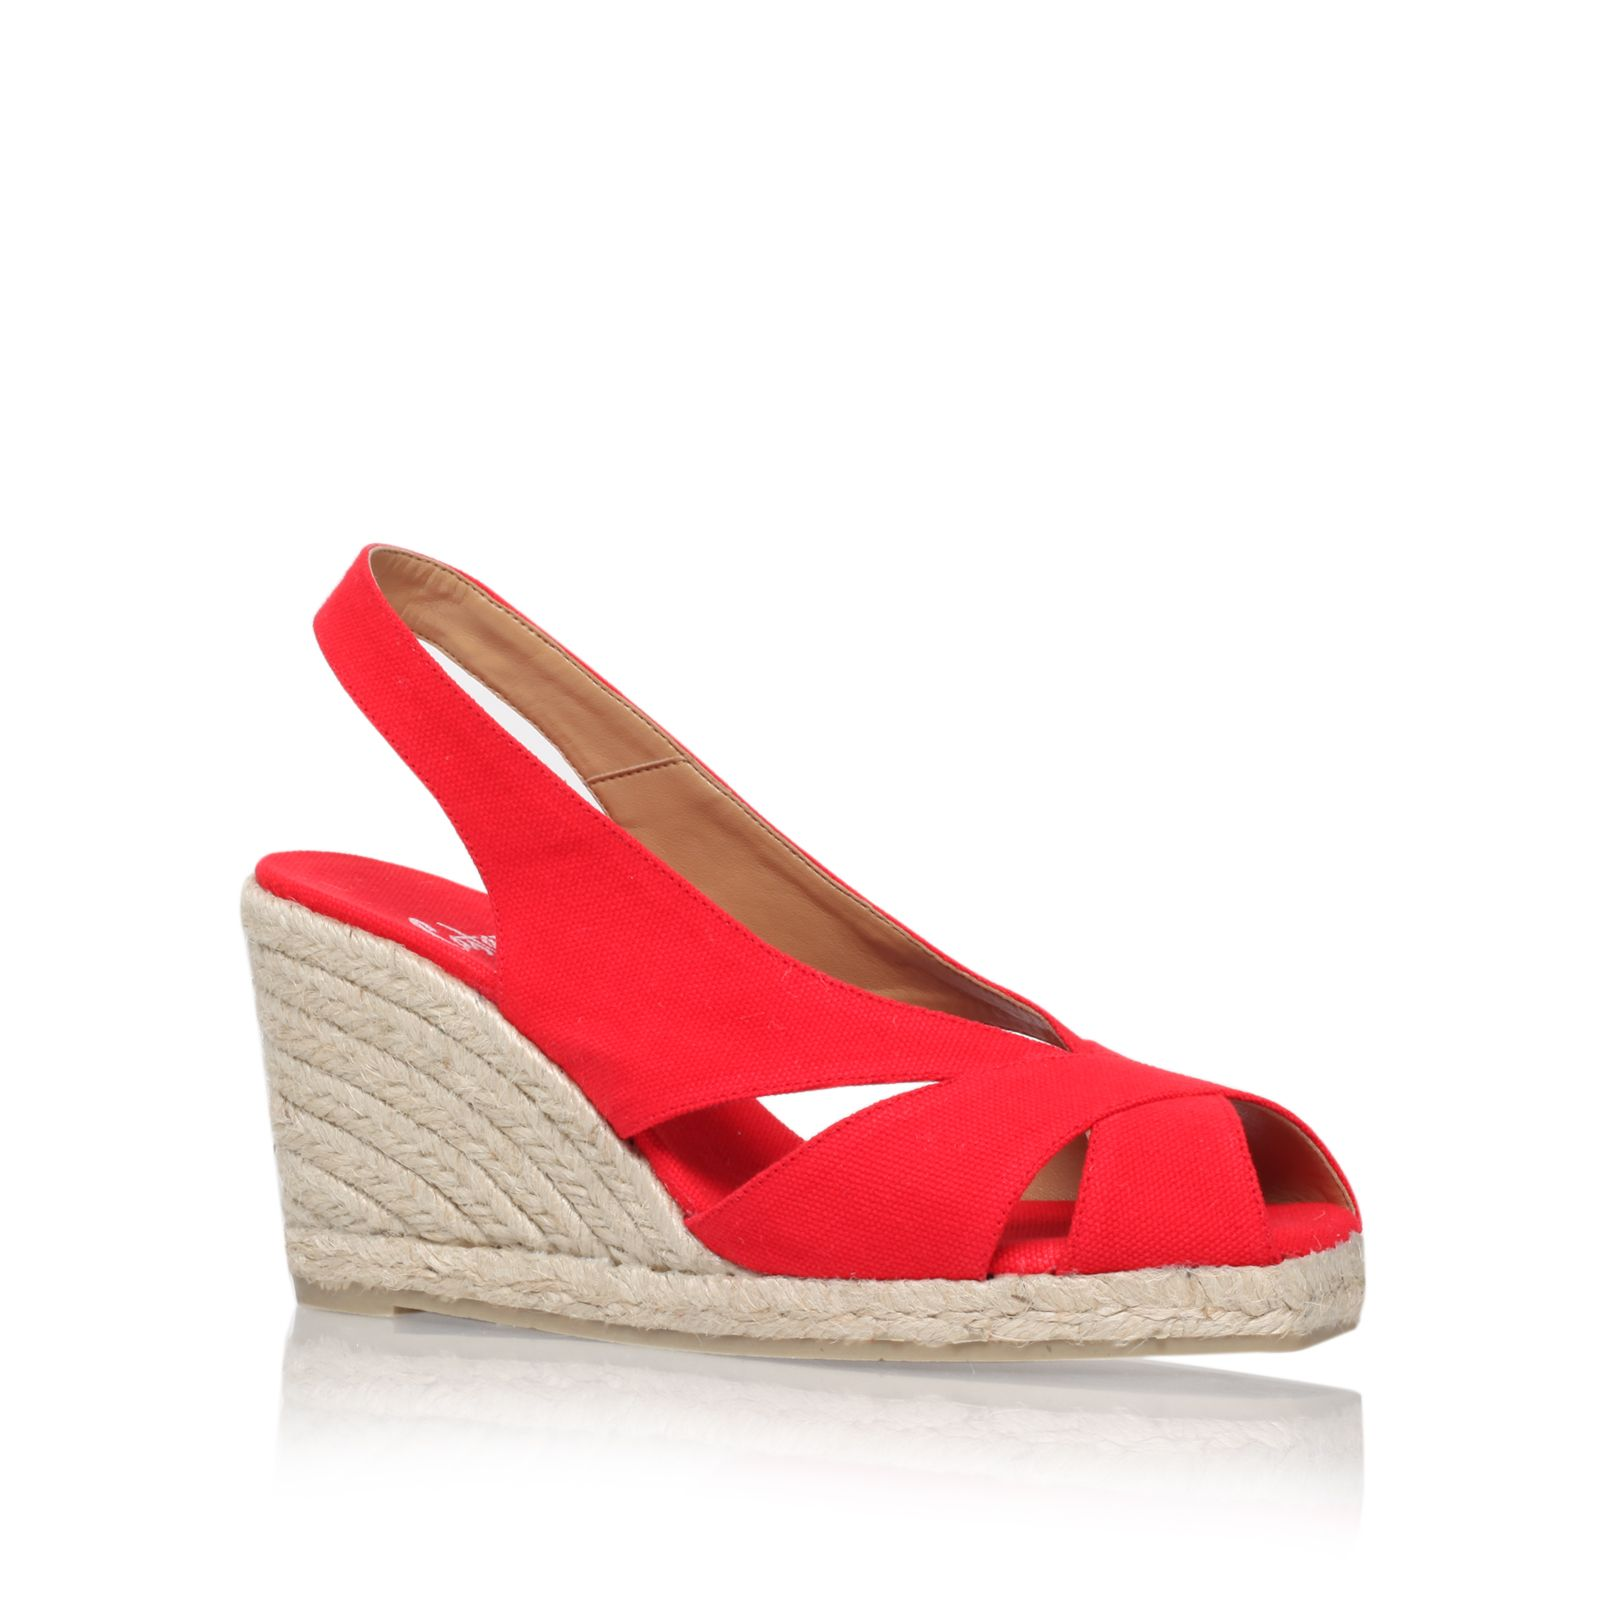 Dunia8 mid heel wedge sandals